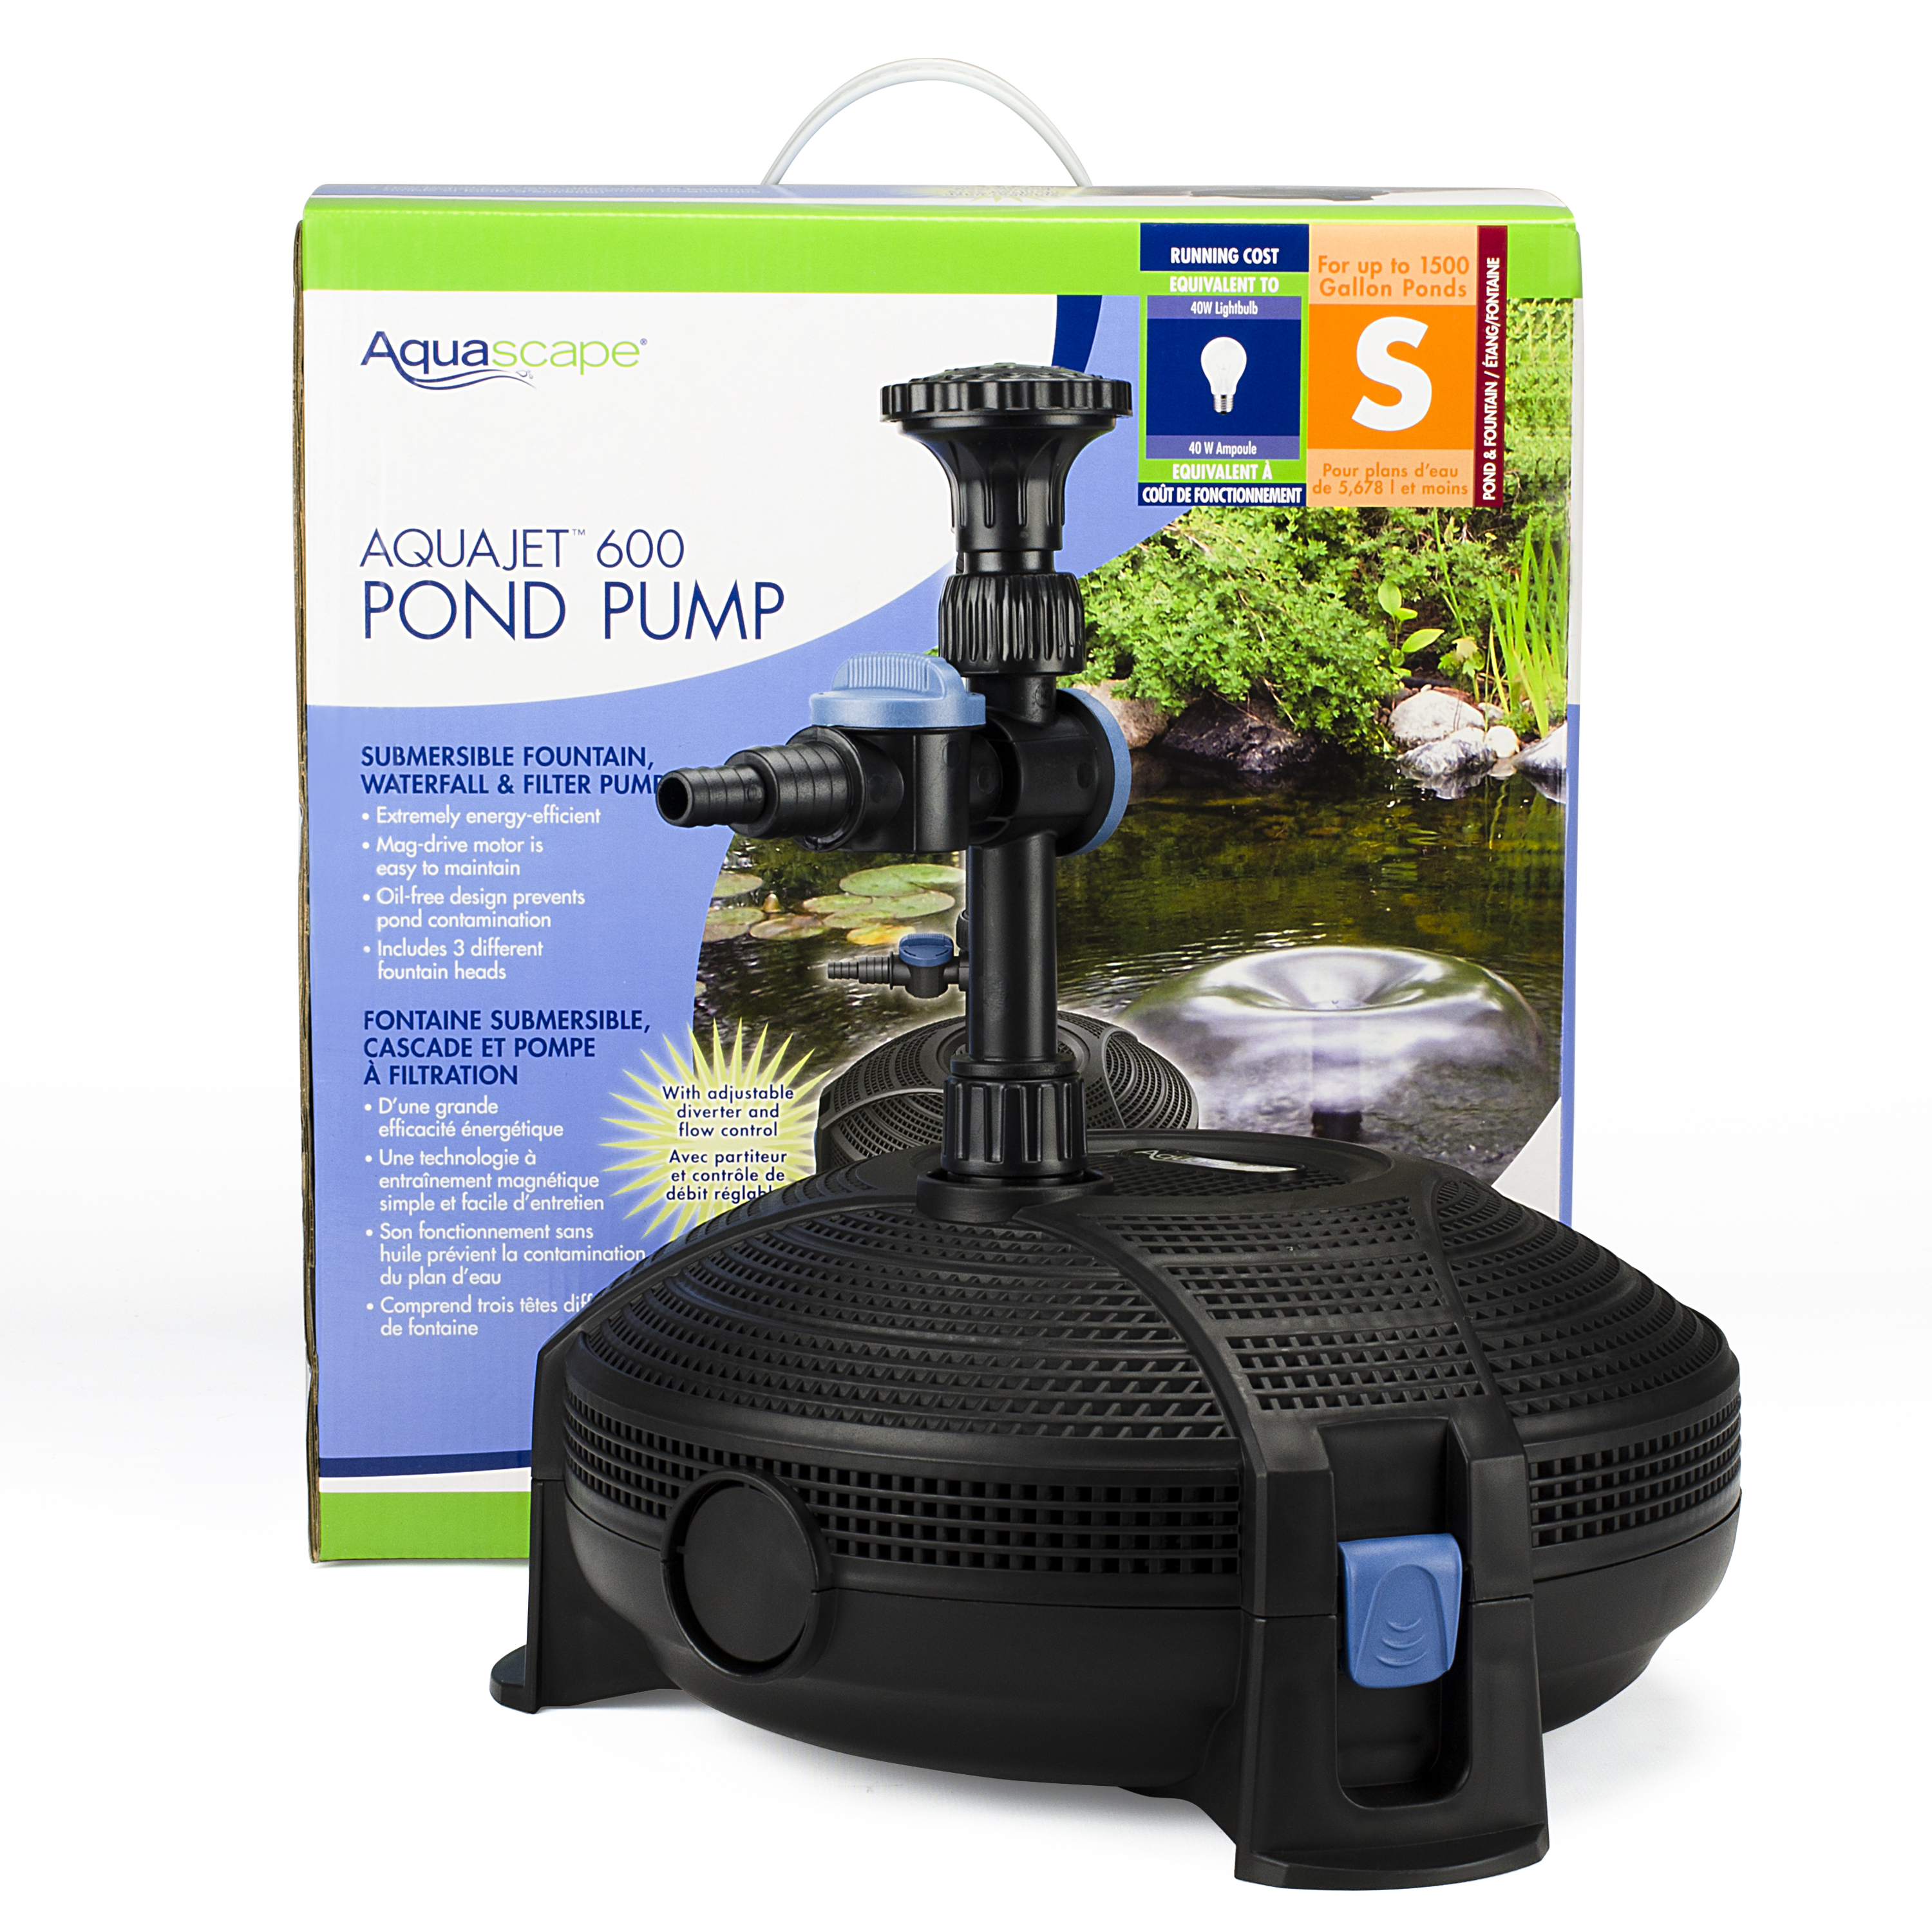 Aquascape AquaSurge® Pond Pumps – Aquascapes